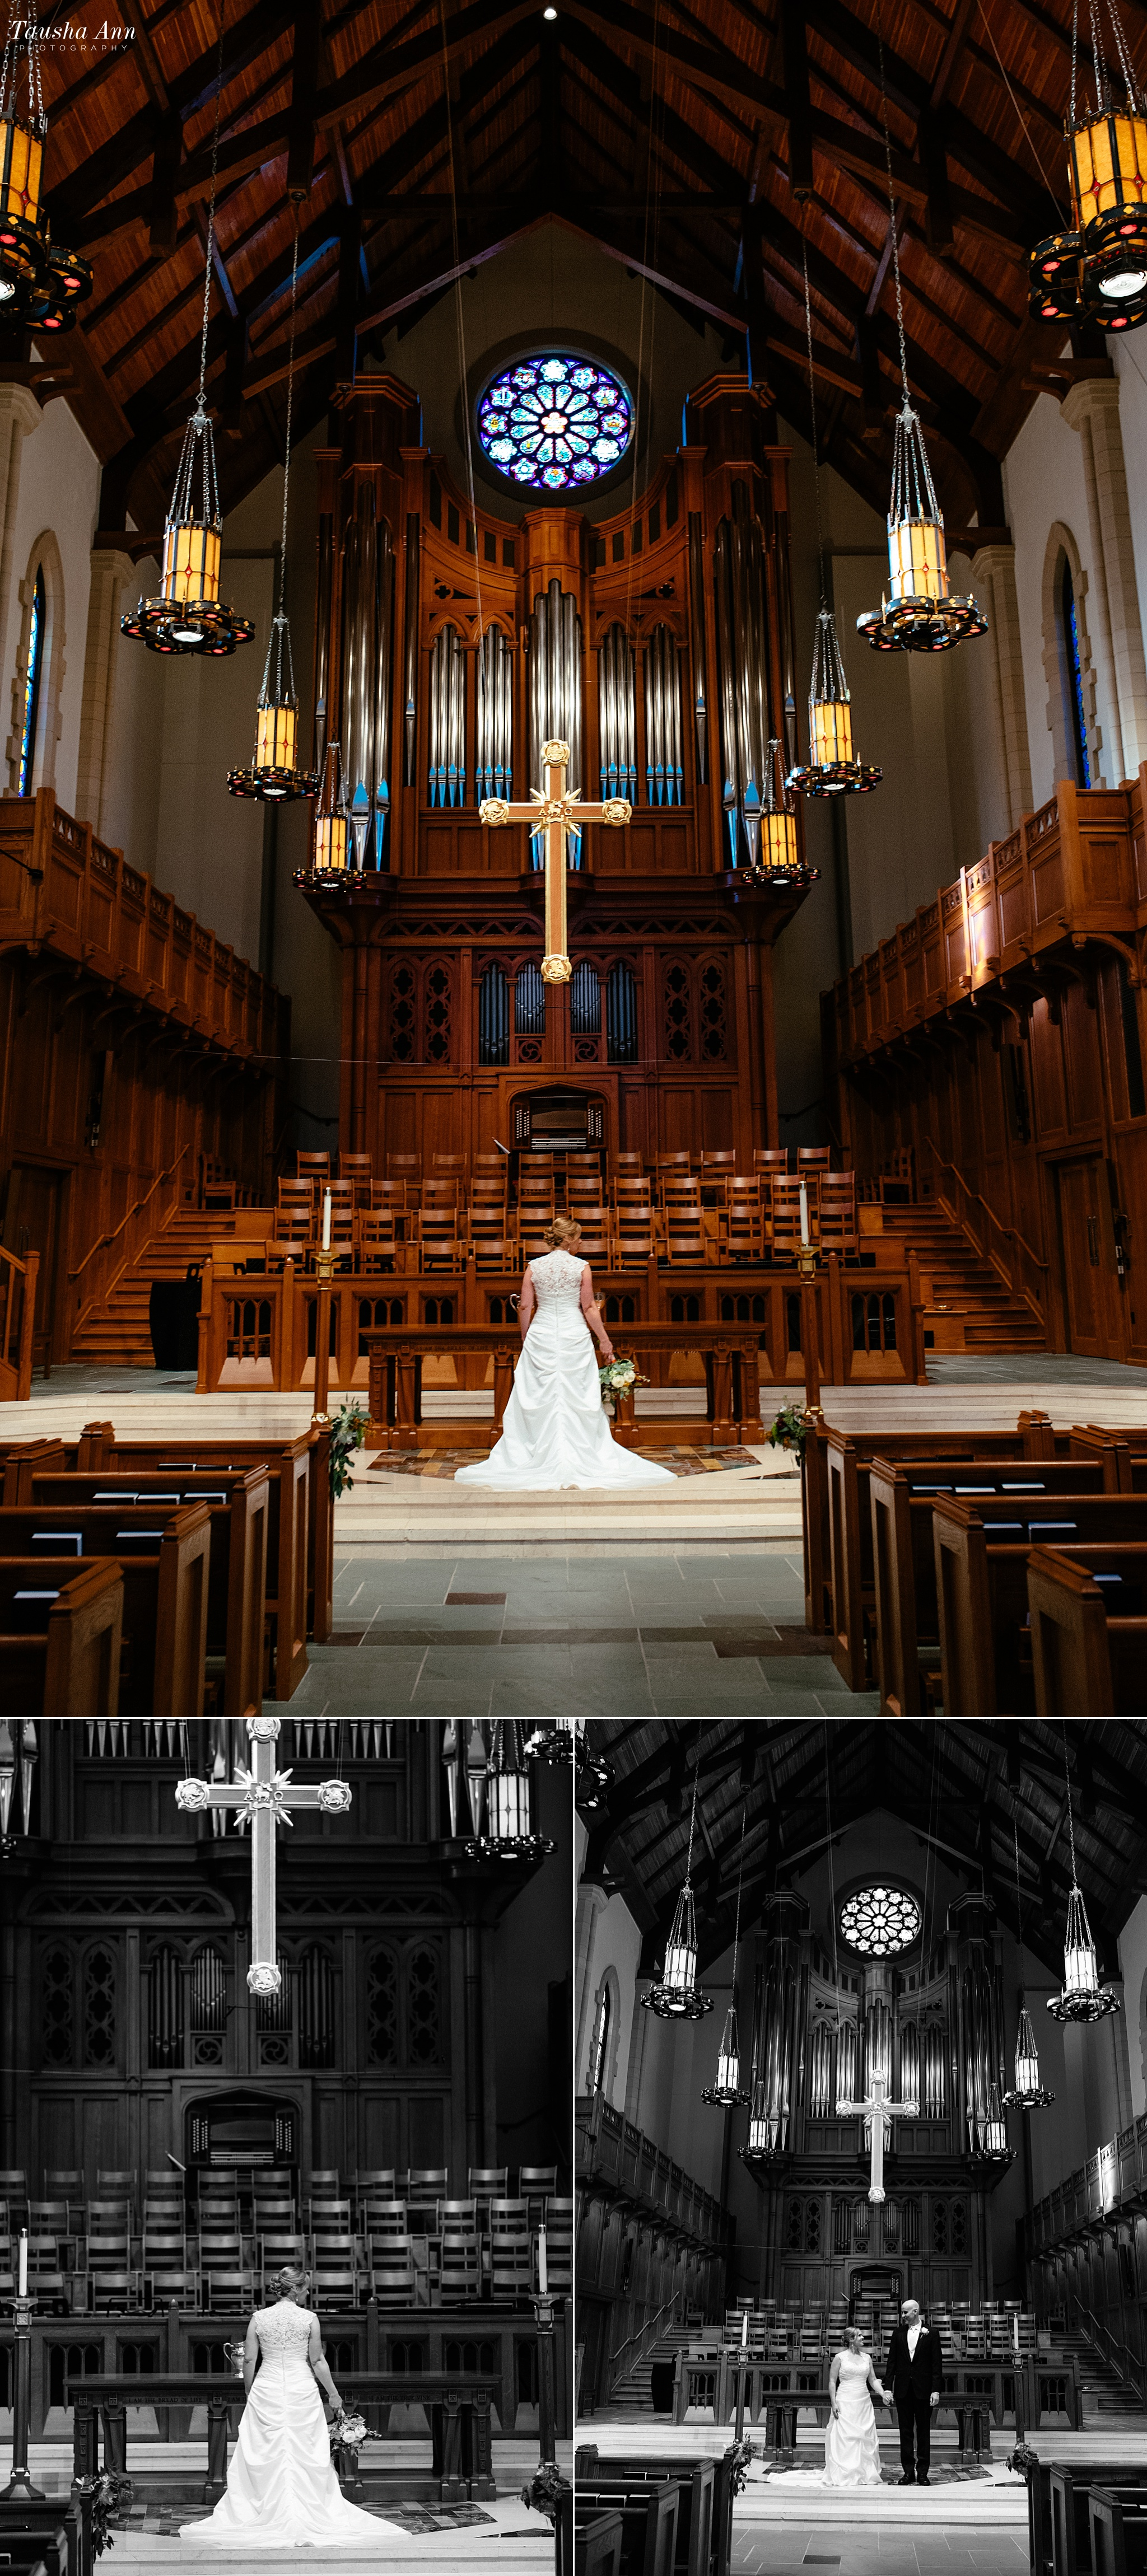 Portraits of Bride and Groom at Altar inside Covenant Presbyterian in Nashville TN